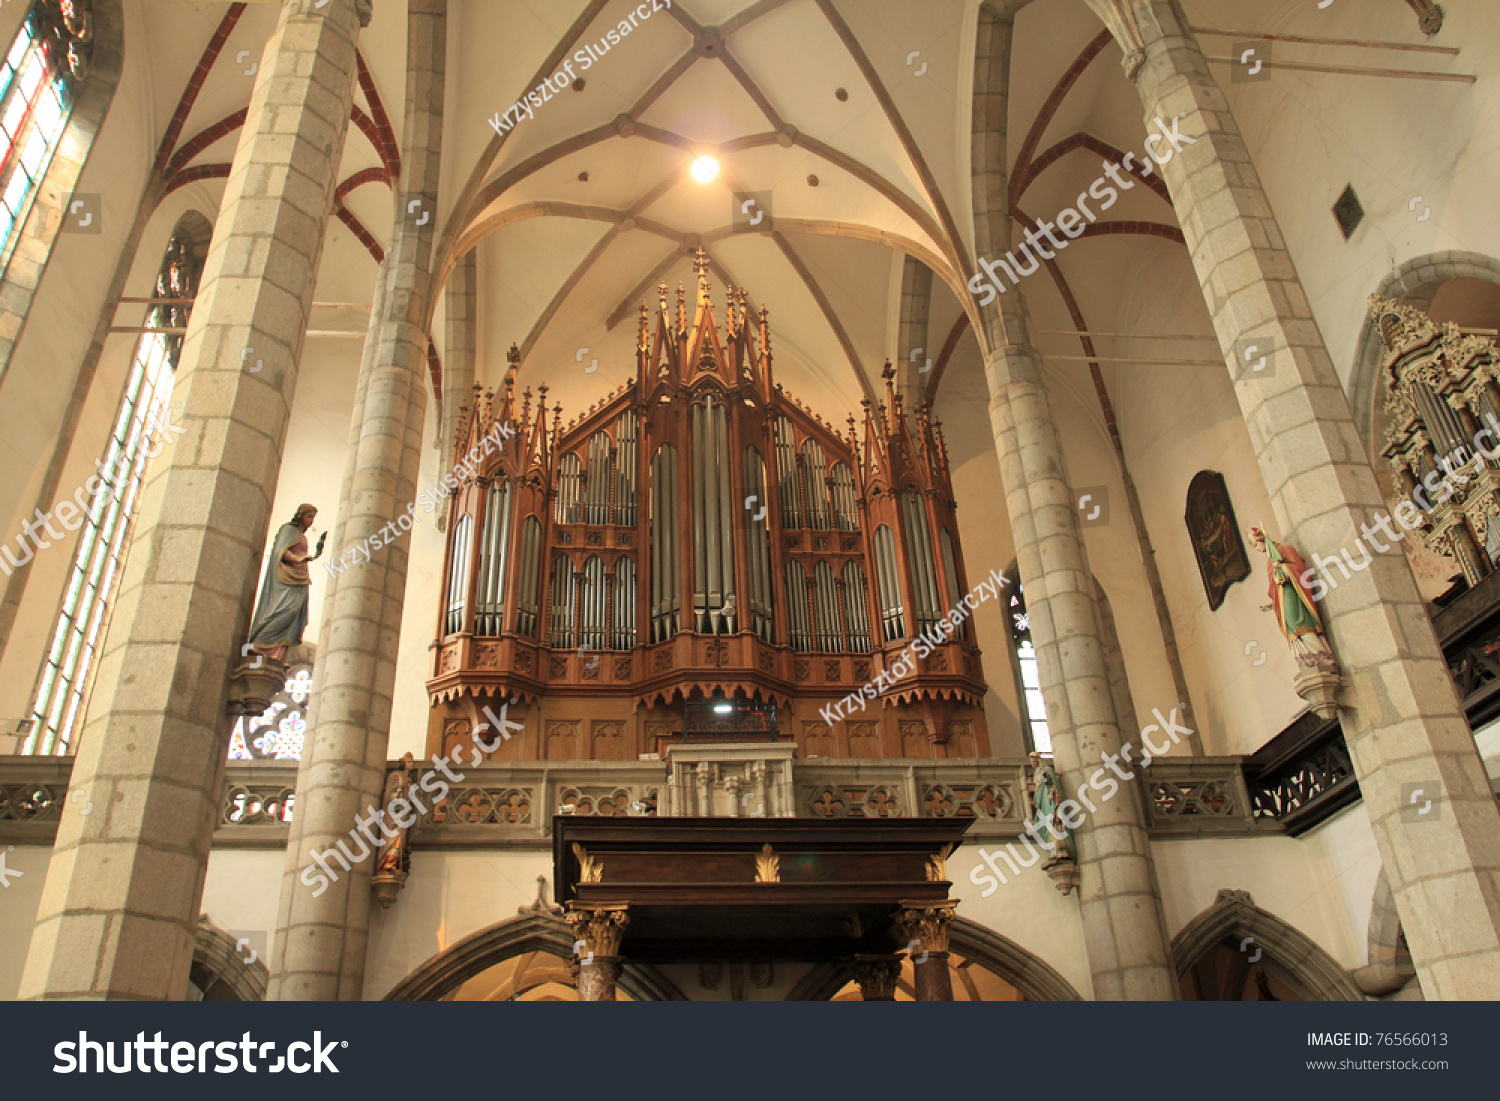 Interior gothic revival church st vitus stock photo for Gothic revival interior